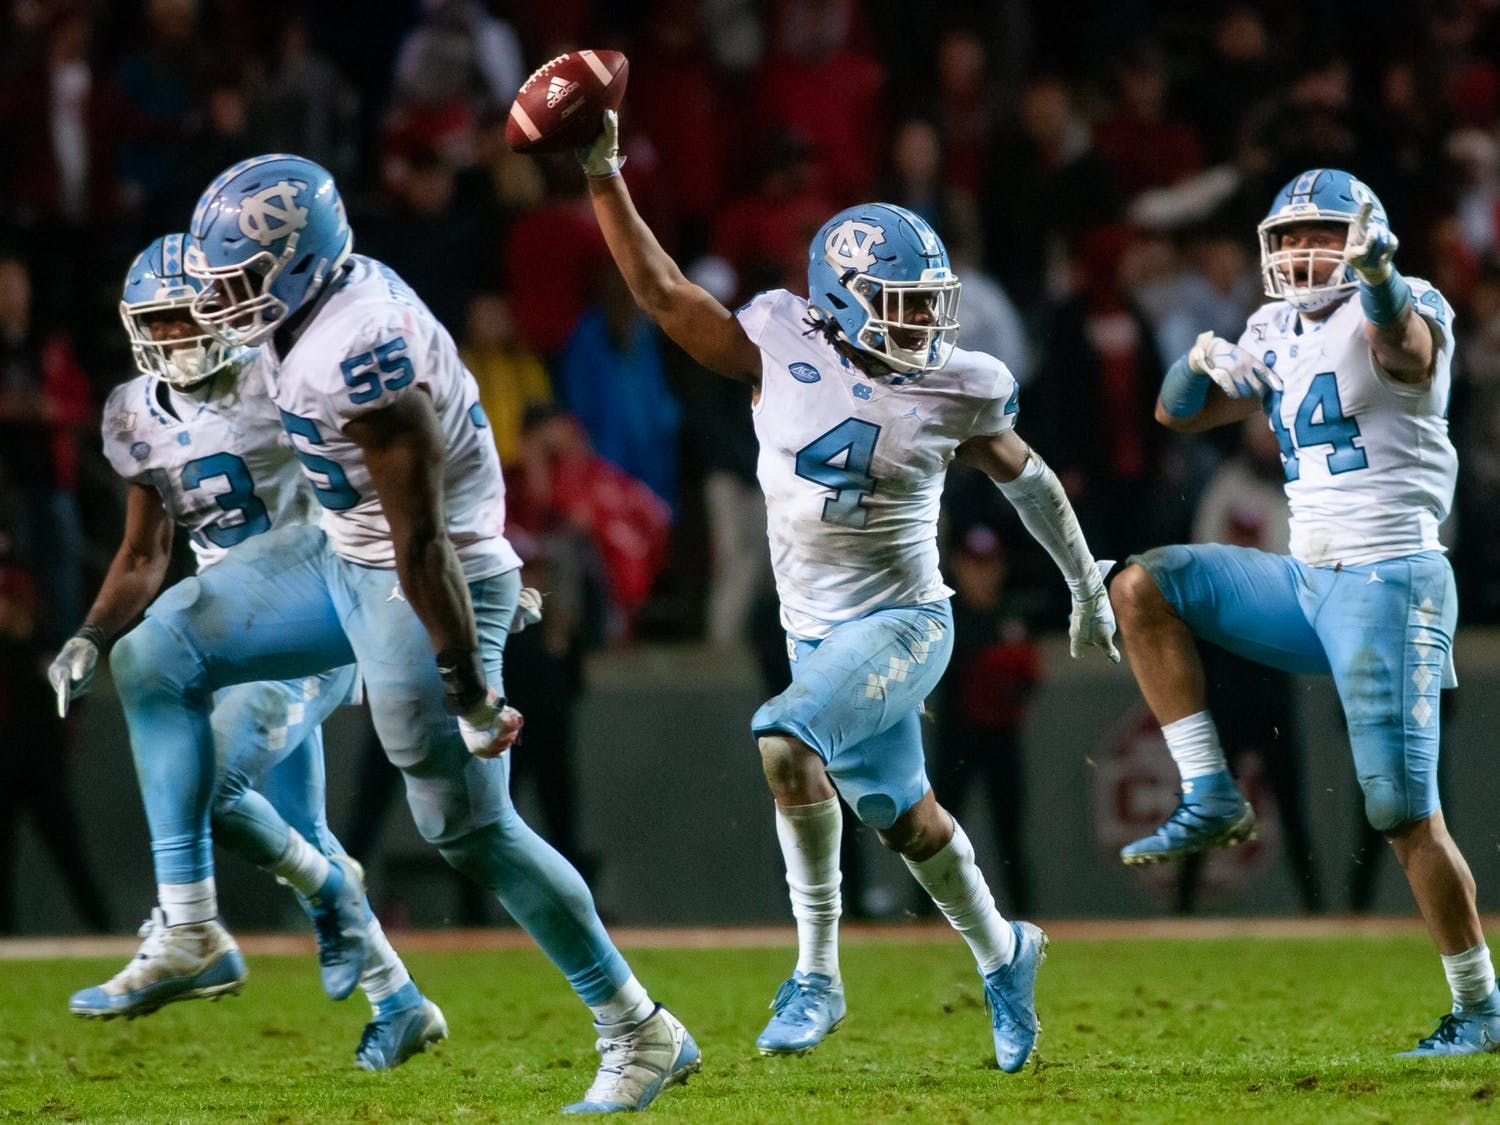 Players celebrate sophomore defensive back Trey Morrison's (4) interception during a game against NC State University on Saturday, Nov. 30, 2019.